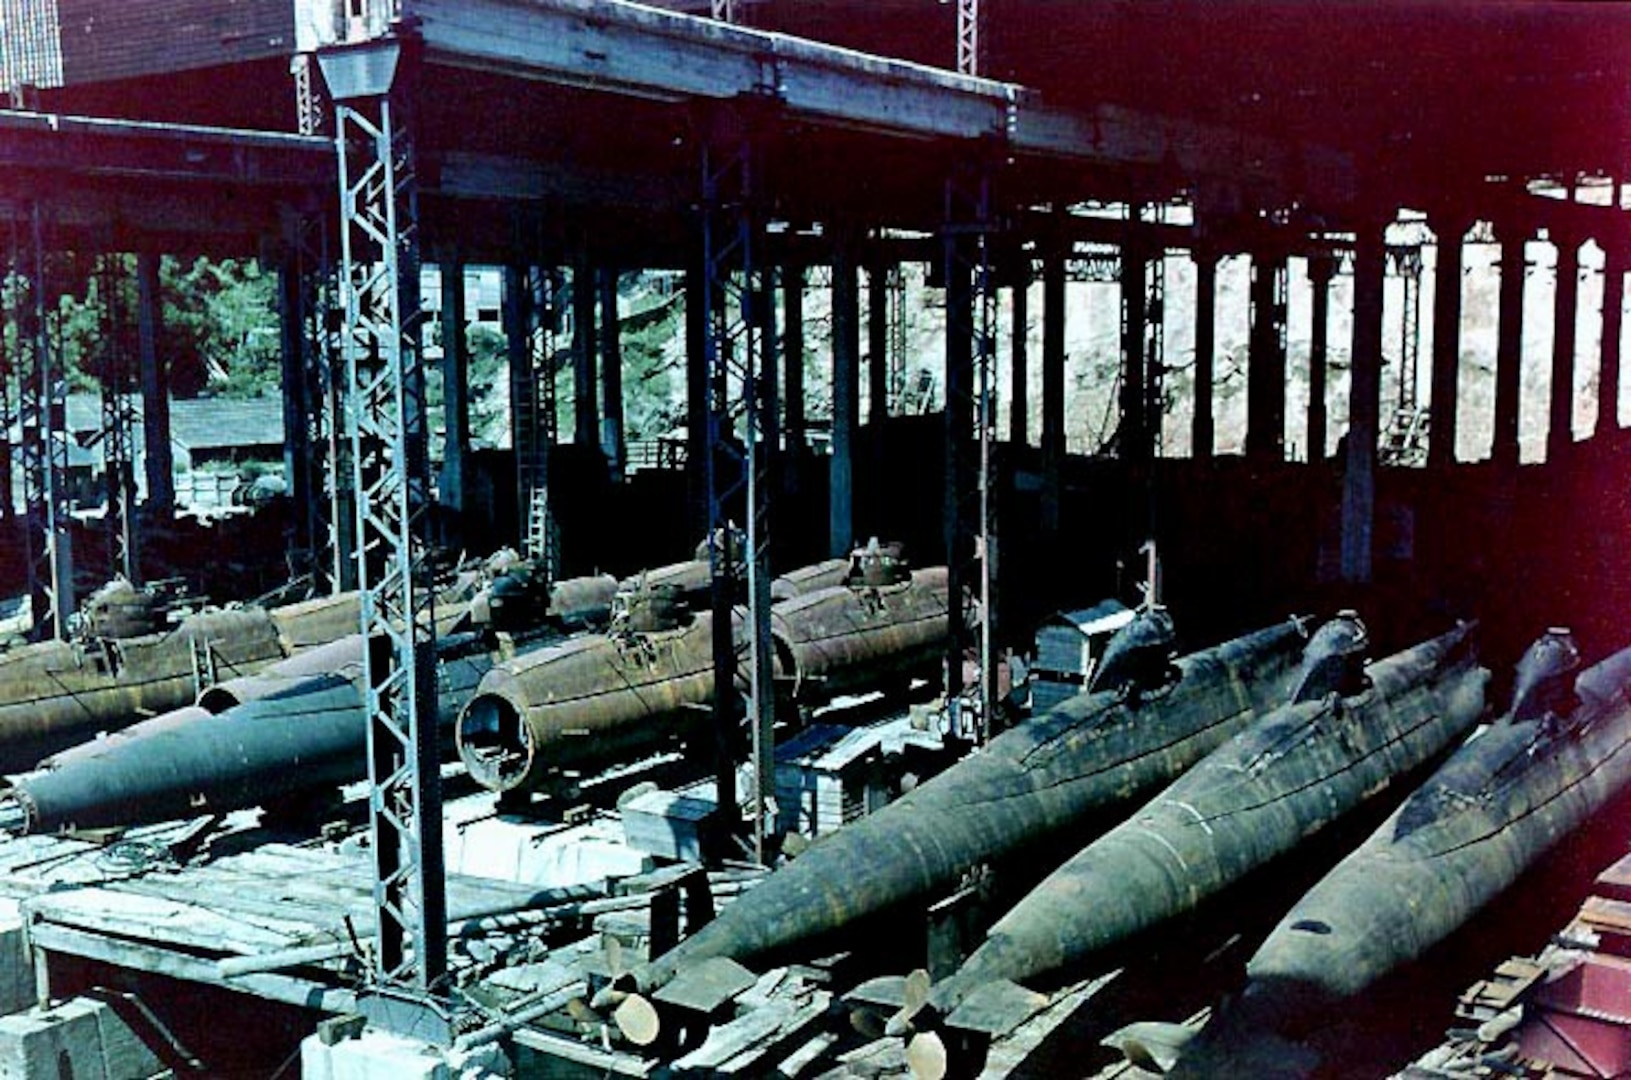 Sometime in the 1940s, submarines await deployment at what is now DLA Distribution's facility in Yokosuka, Japan.